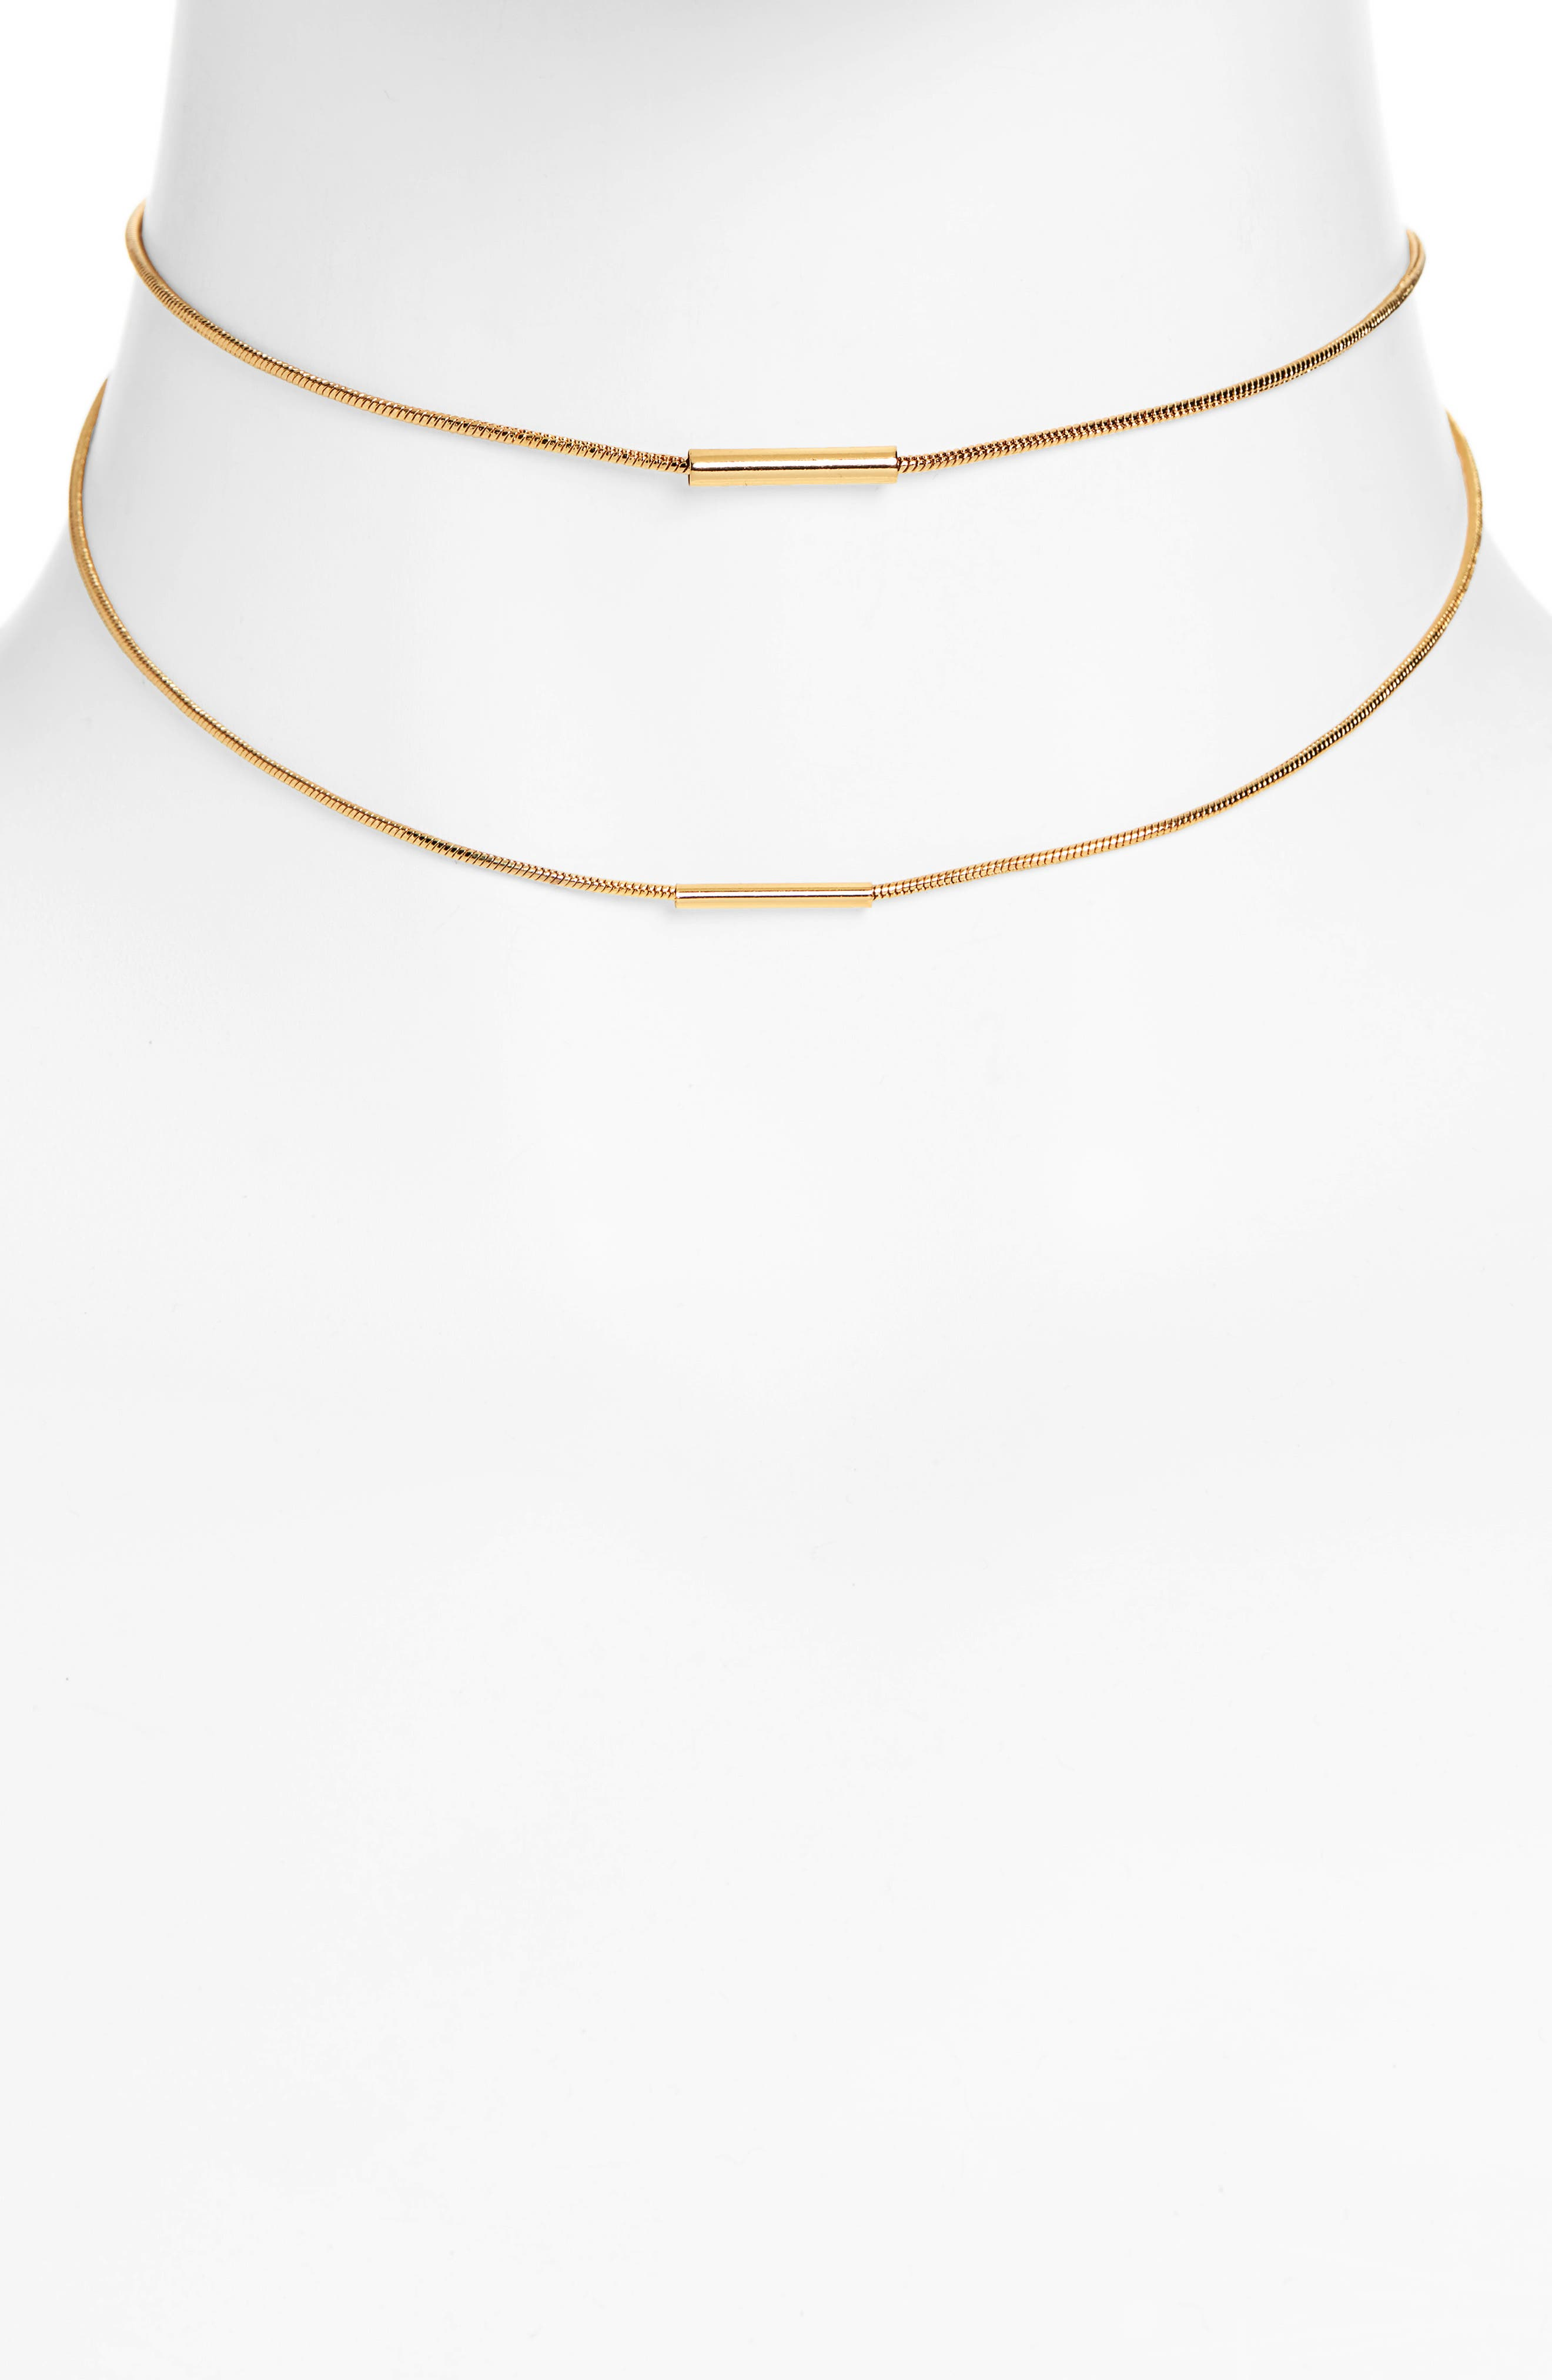 UNCOMMON JAMES BY KRISTIN CAVALLARI, Tennessee Multistrand Necklace, Main thumbnail 1, color, GOLD